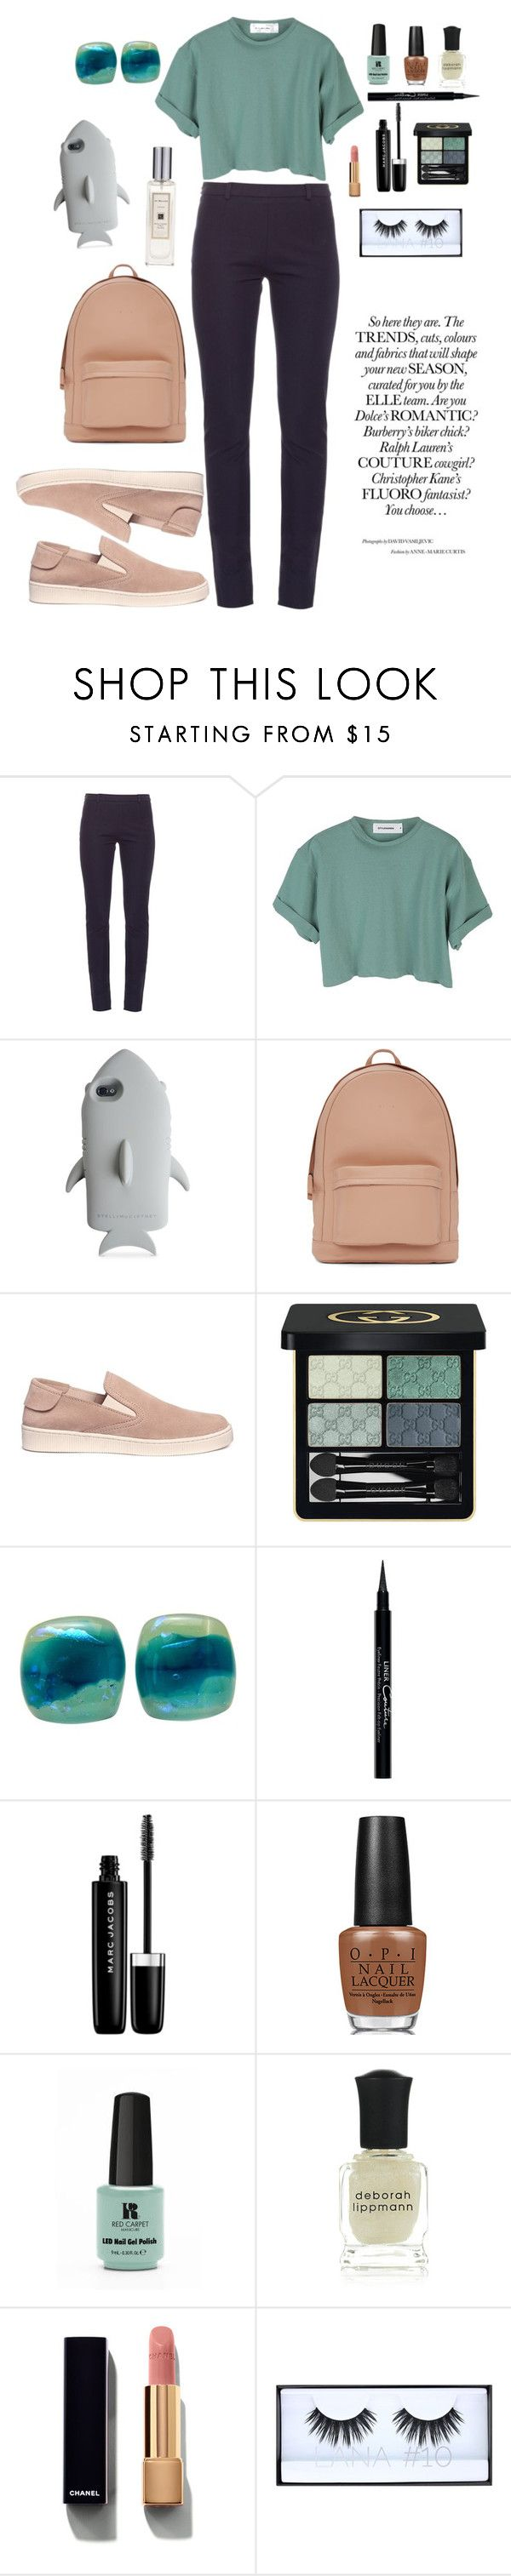 """""""Modestovna #144"""" by anna-modestovna ❤ liked on Polyvore featuring Roland Mouret, StyleNanda, STELLA McCARTNEY, PB 0110, Pedro García, Gucci, Givenchy, Marc Jacobs, OPI and Red Carpet Manicure"""